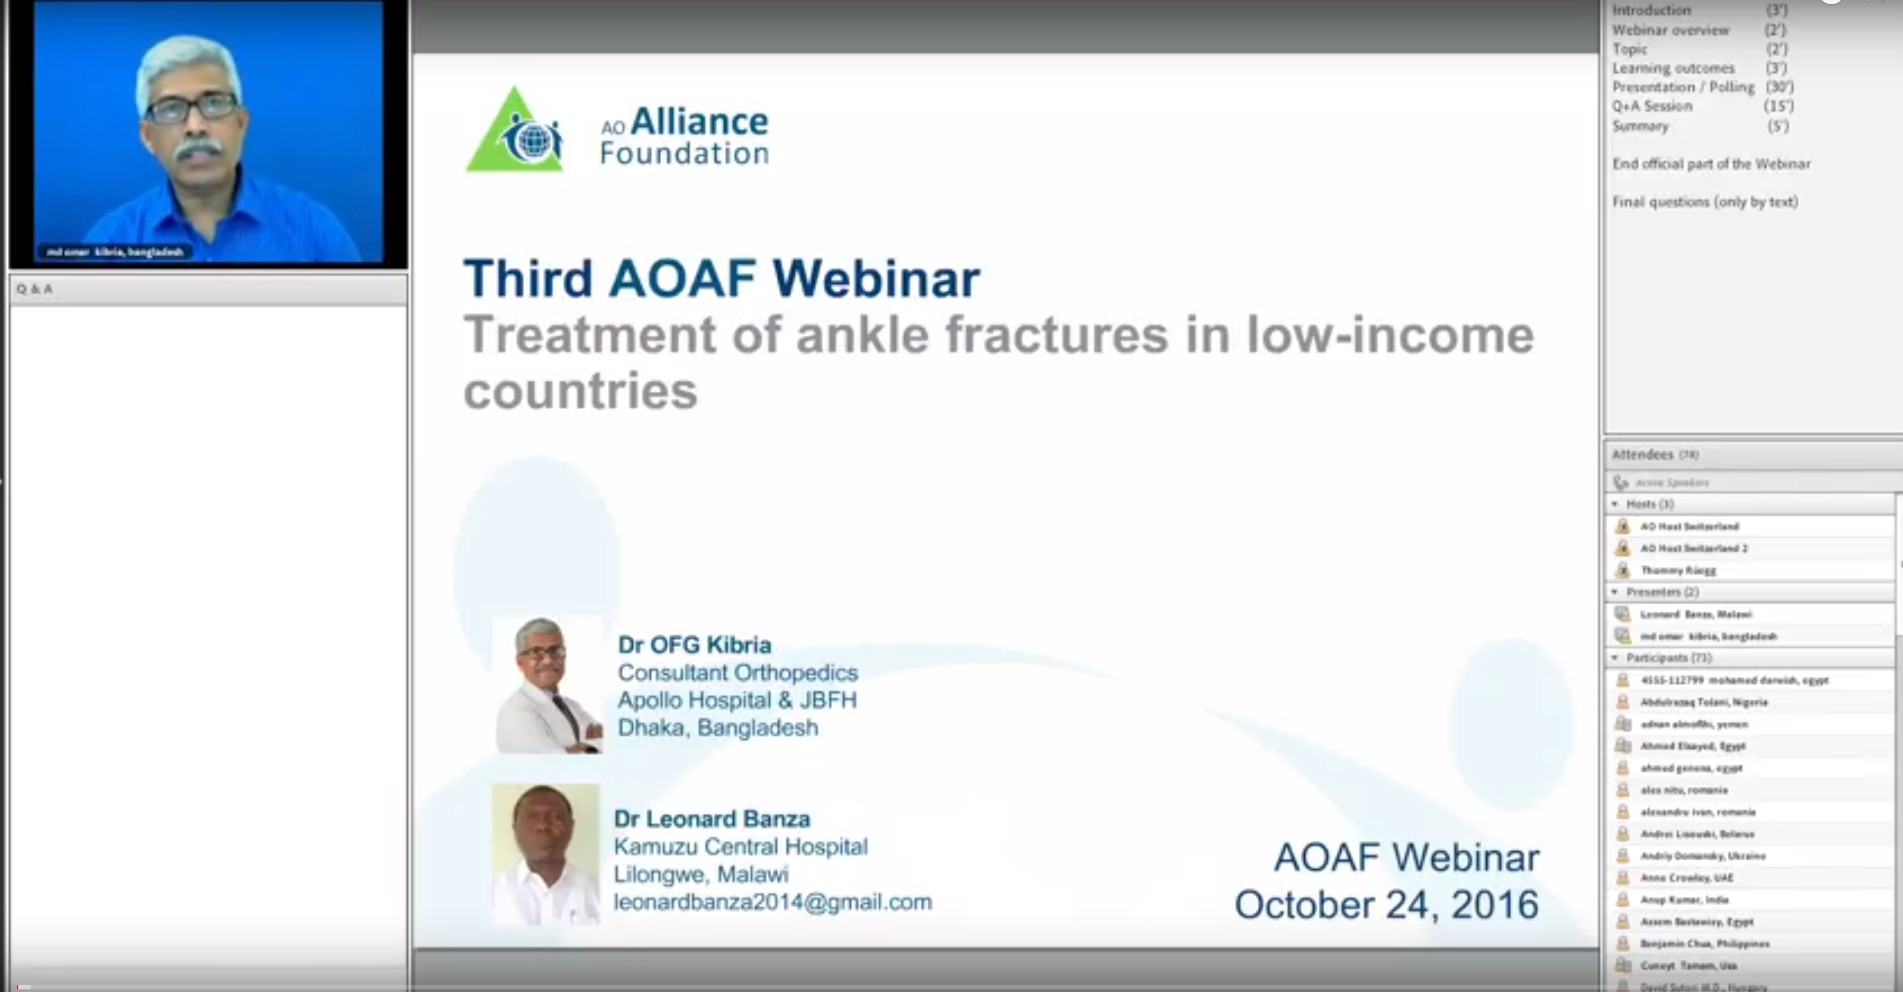 Treatment of ankle fractures in LICs